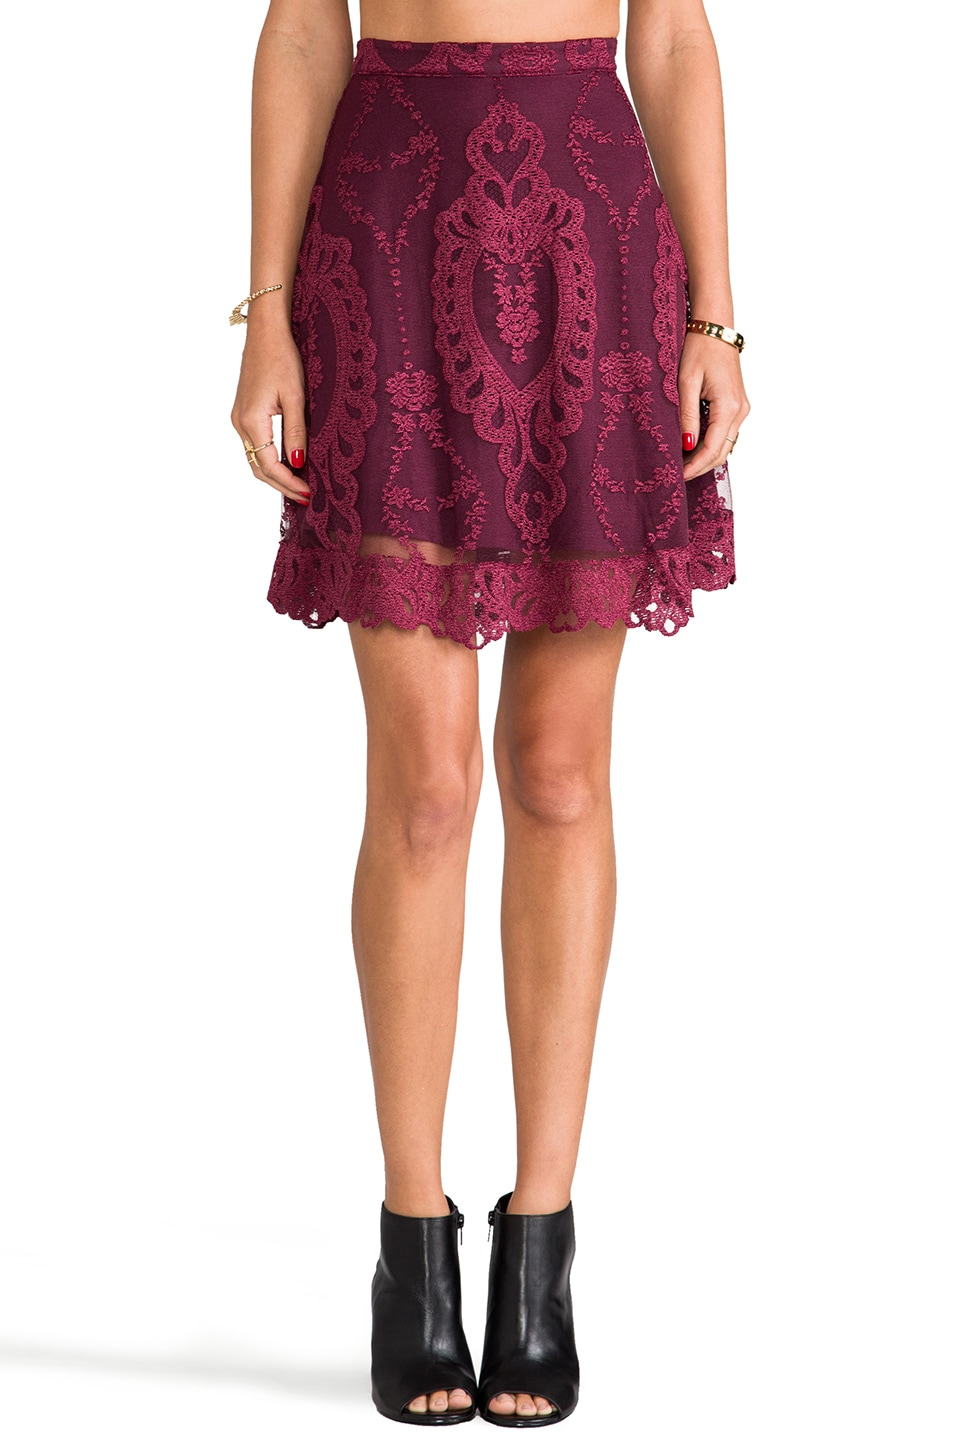 For Love & Lemons Forever Skirt in Wine